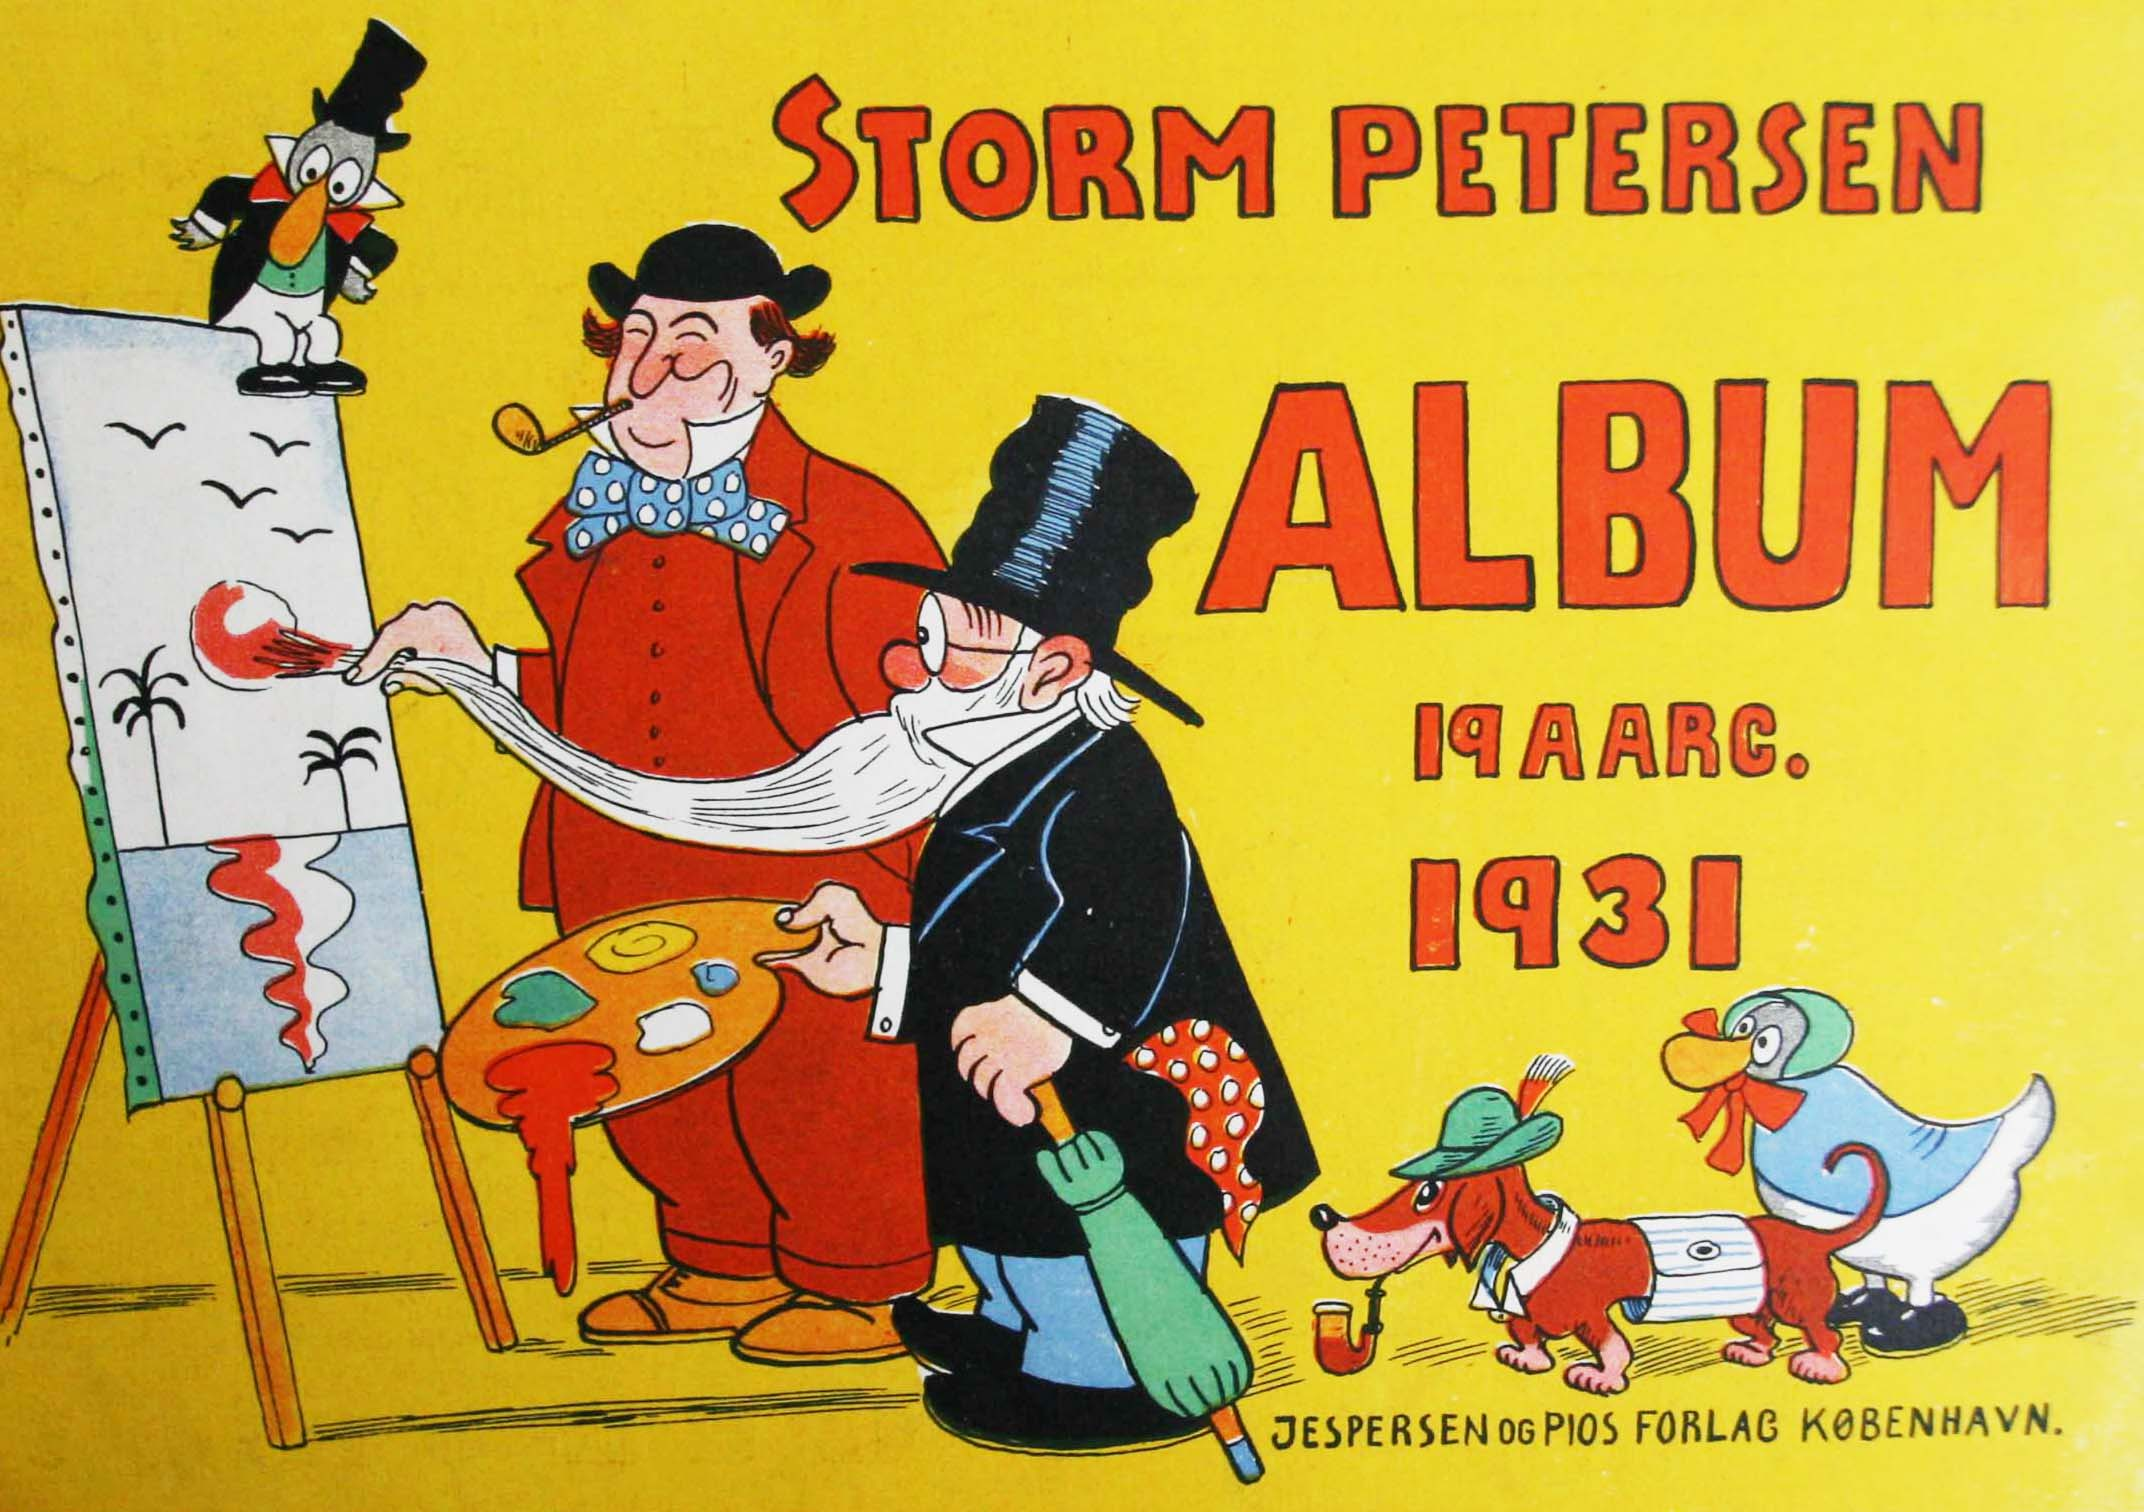 Robert Storm Petersen Storm P. Album 1931